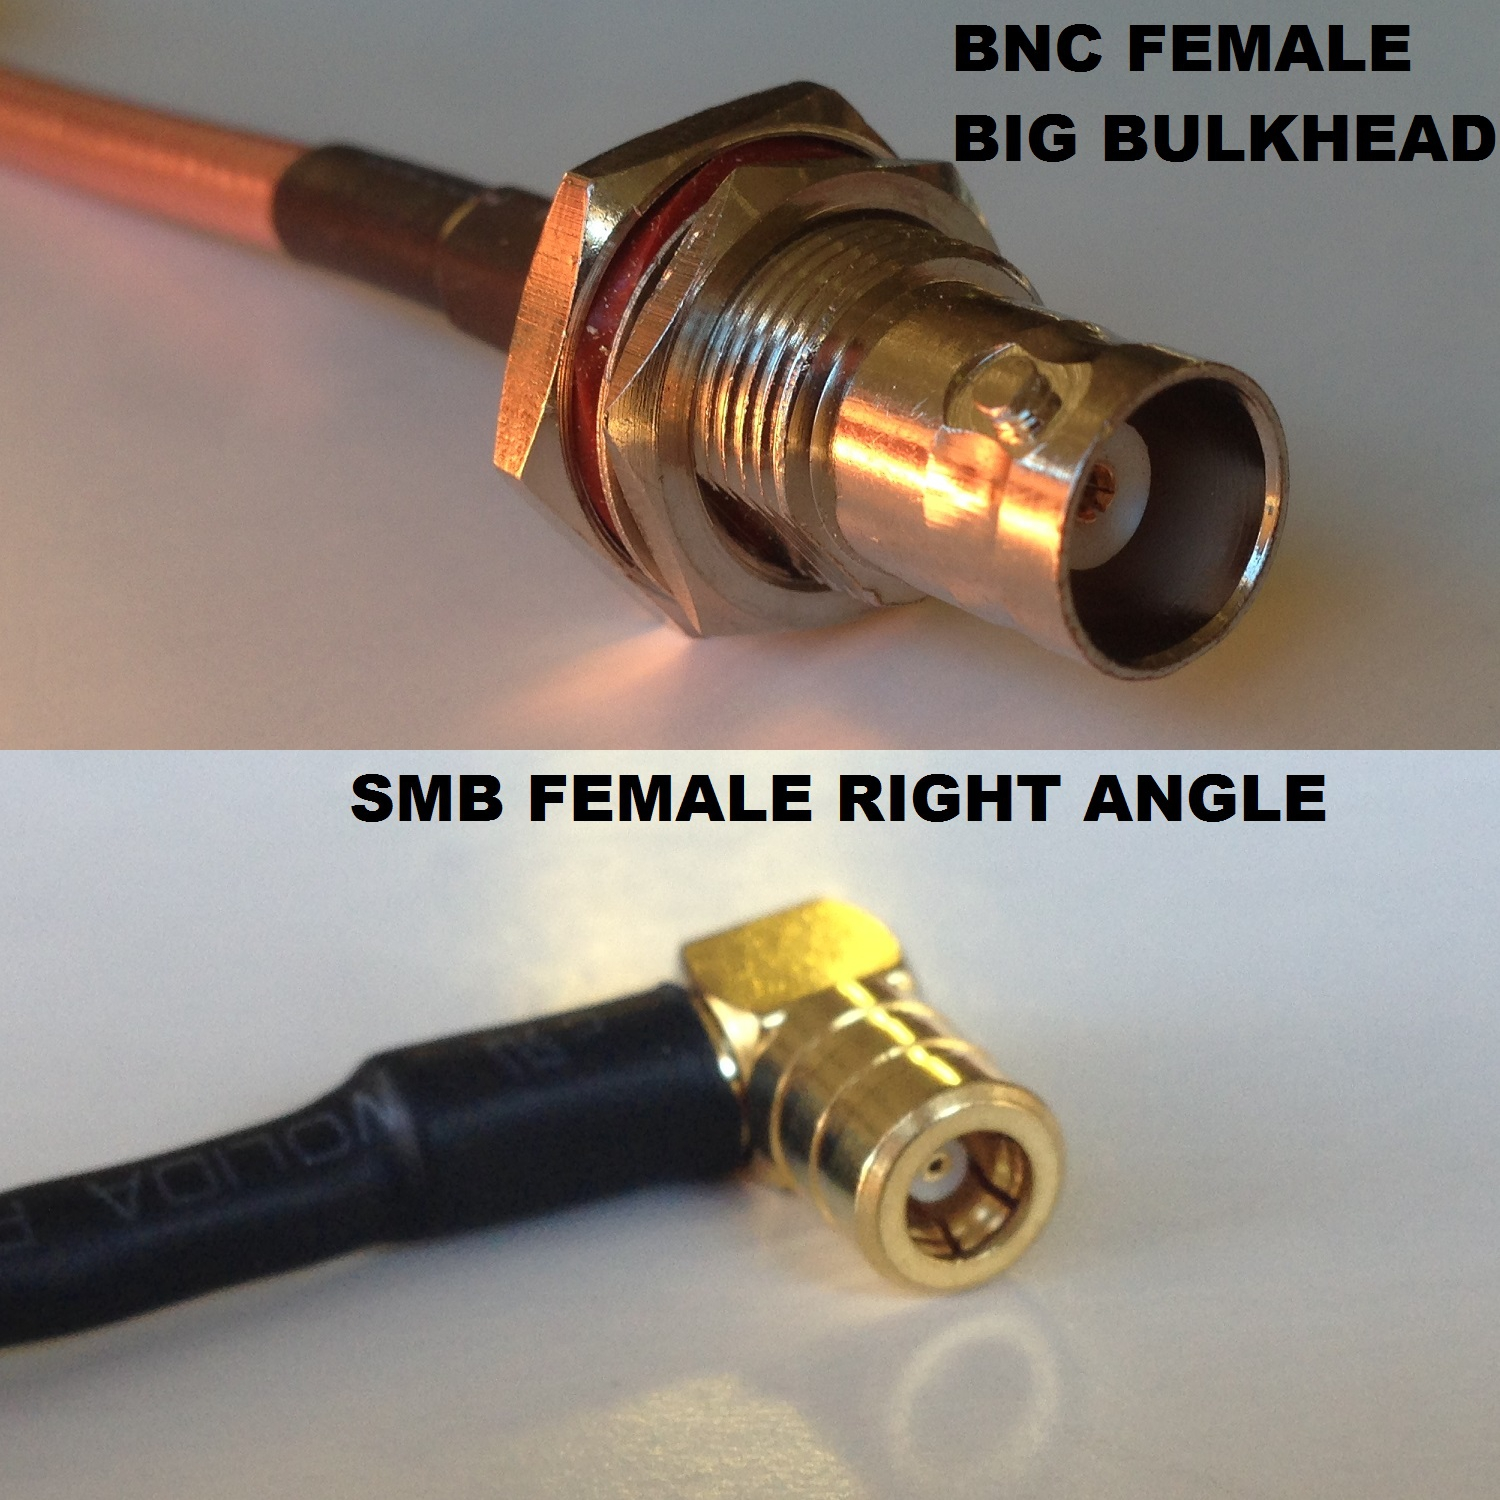 RG316 SMB MALE to SO239 UHF Female Coaxial RF Cable USA-US